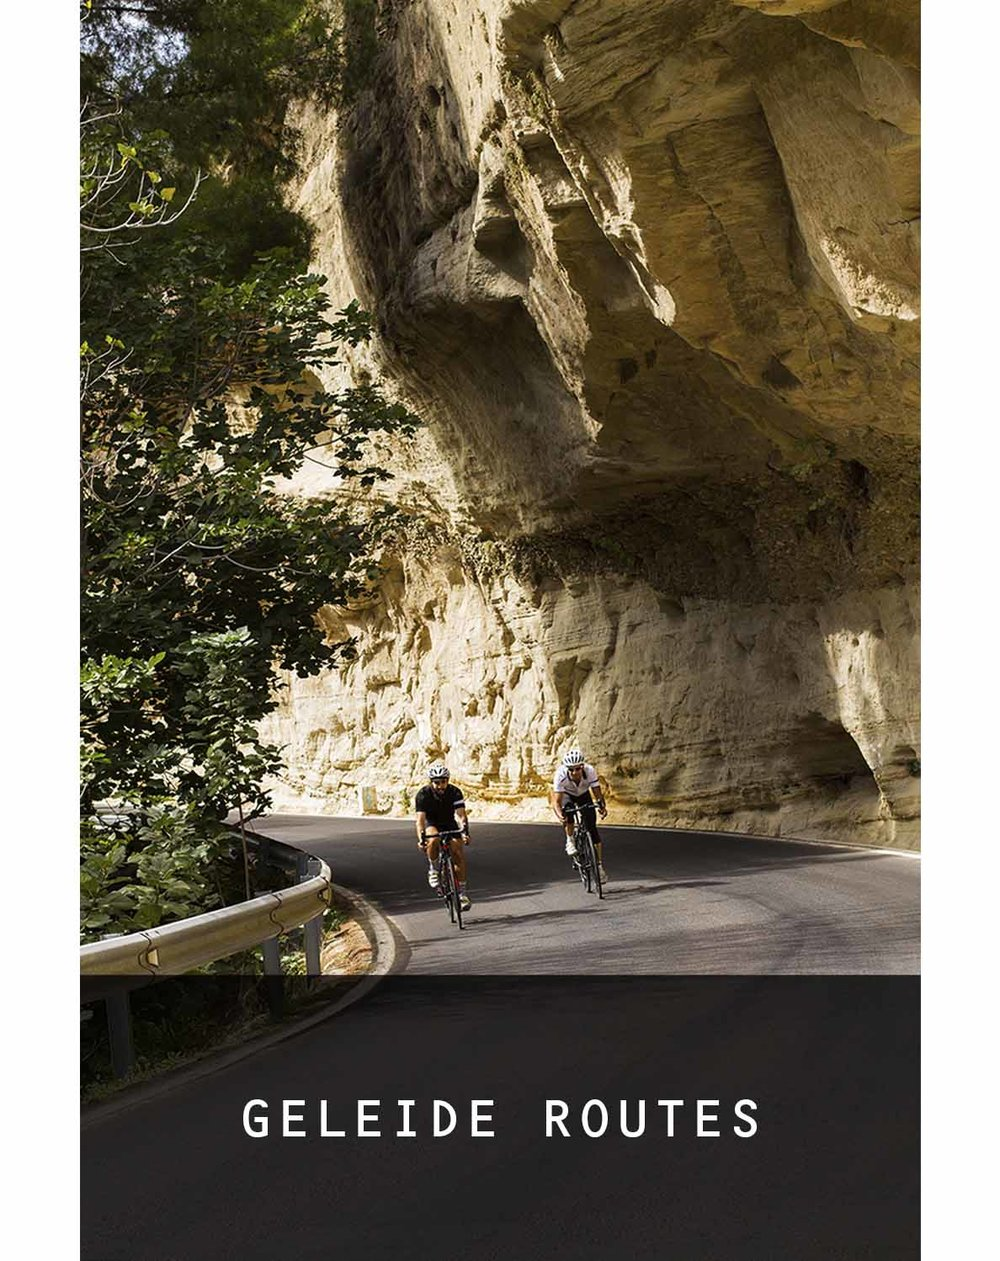 geleide-fietsroutes-racefiets_malaga-andalucia-spain